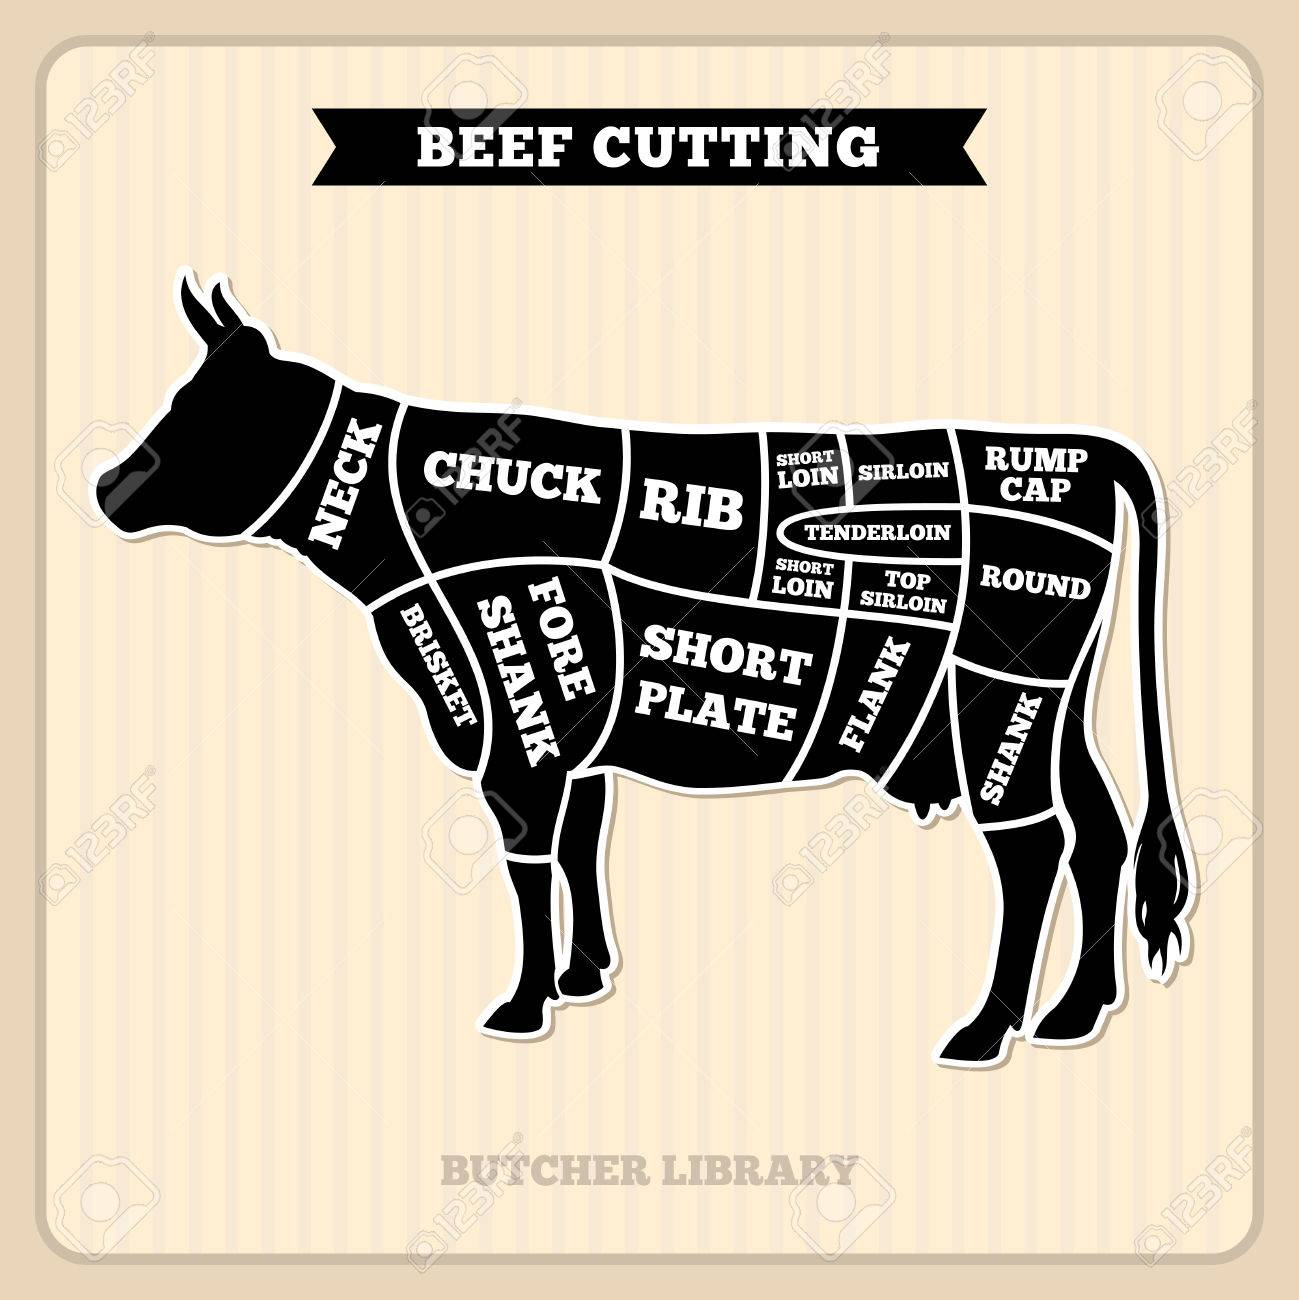 dairy cow parts diagram prs se custom 22 wiring meat cut free cuts vector image 1490900 hight resolution of beef butcher placard with section